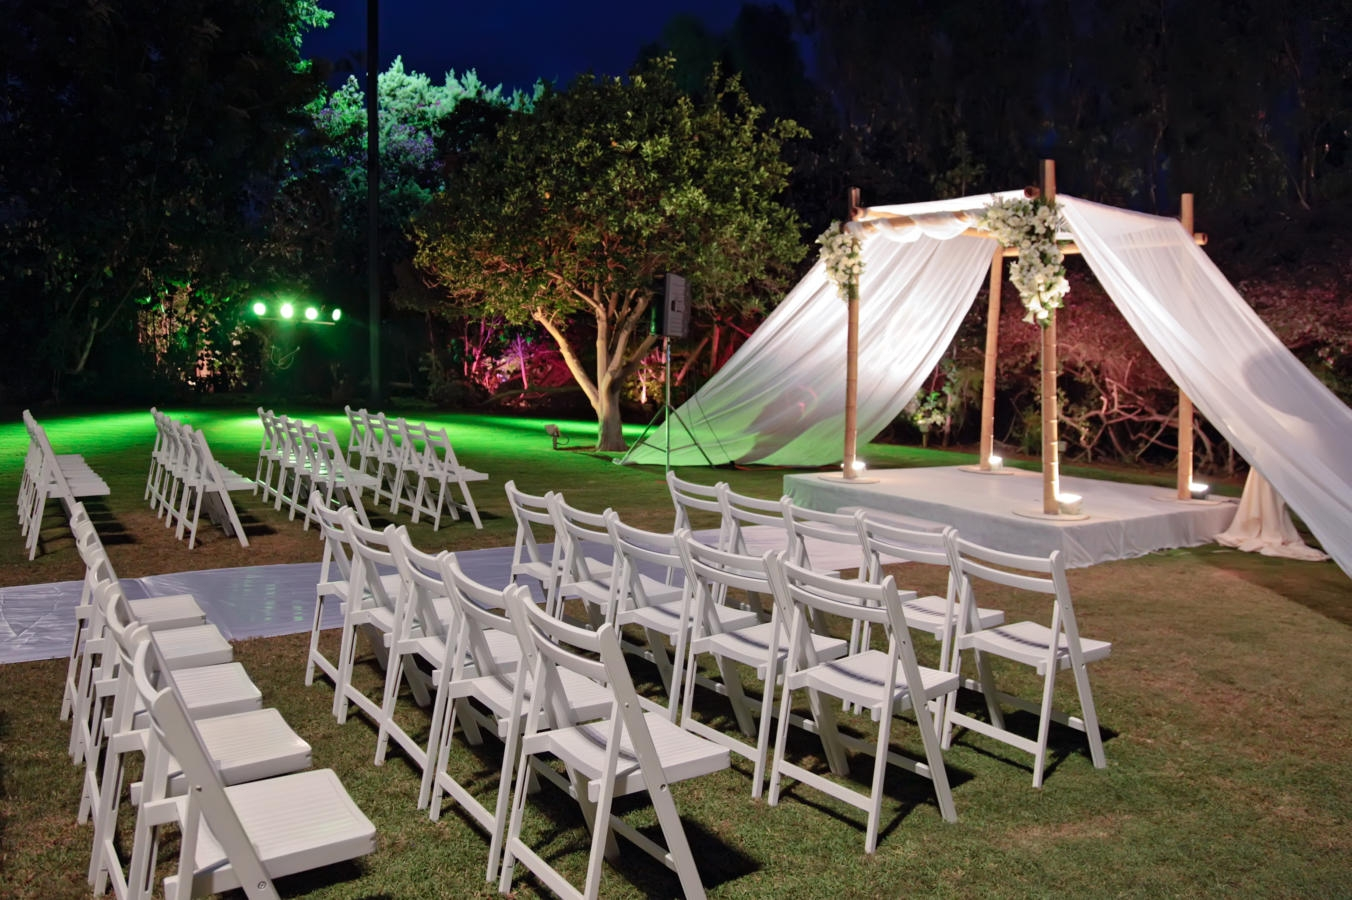 & The Chuppah or Wedding Canopy | My Jewish Learning